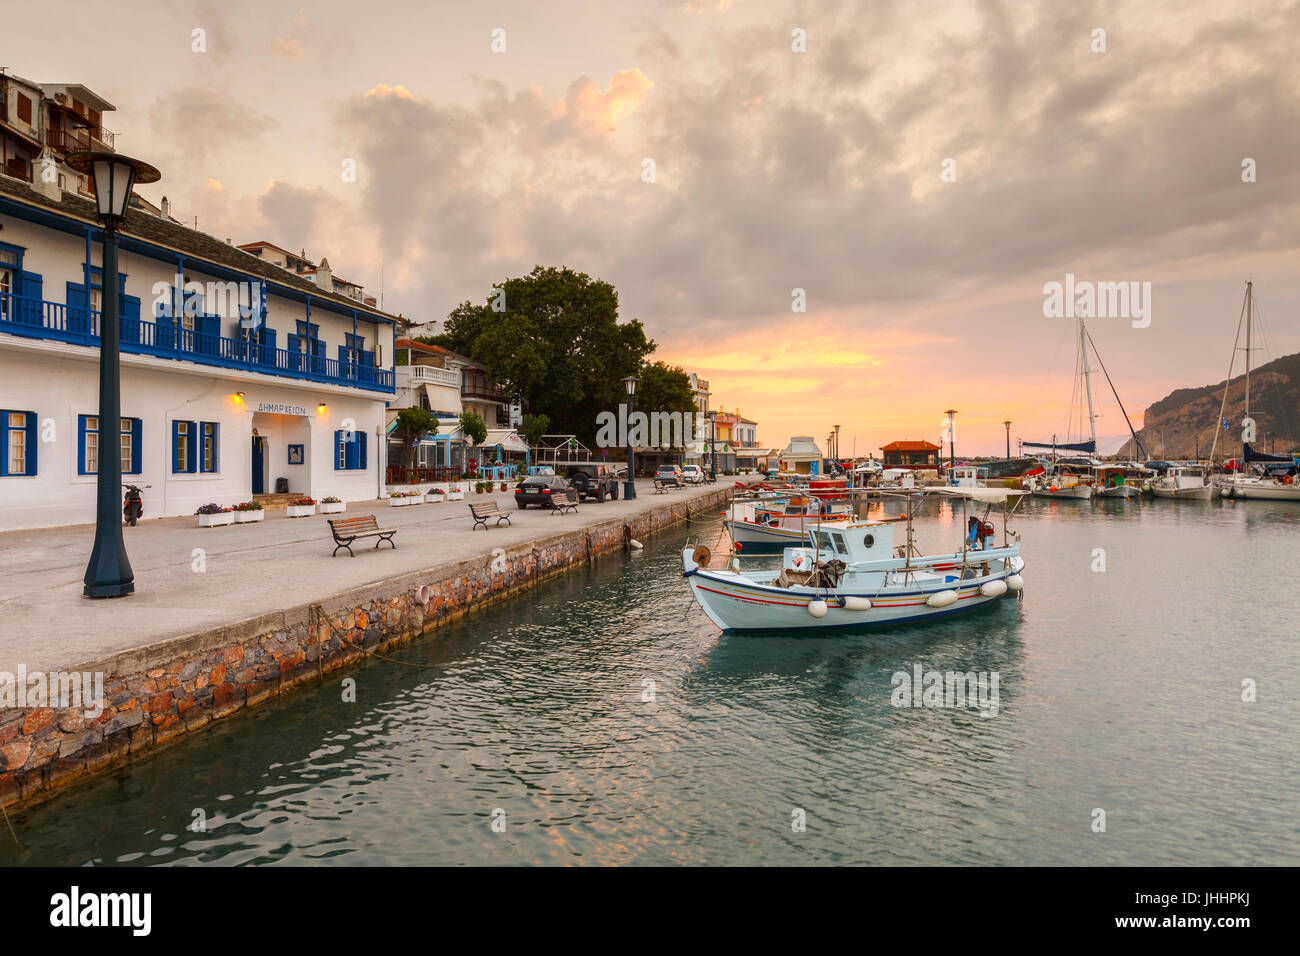 Town hall and the port of Skopelos town, Greece. - Stock Image